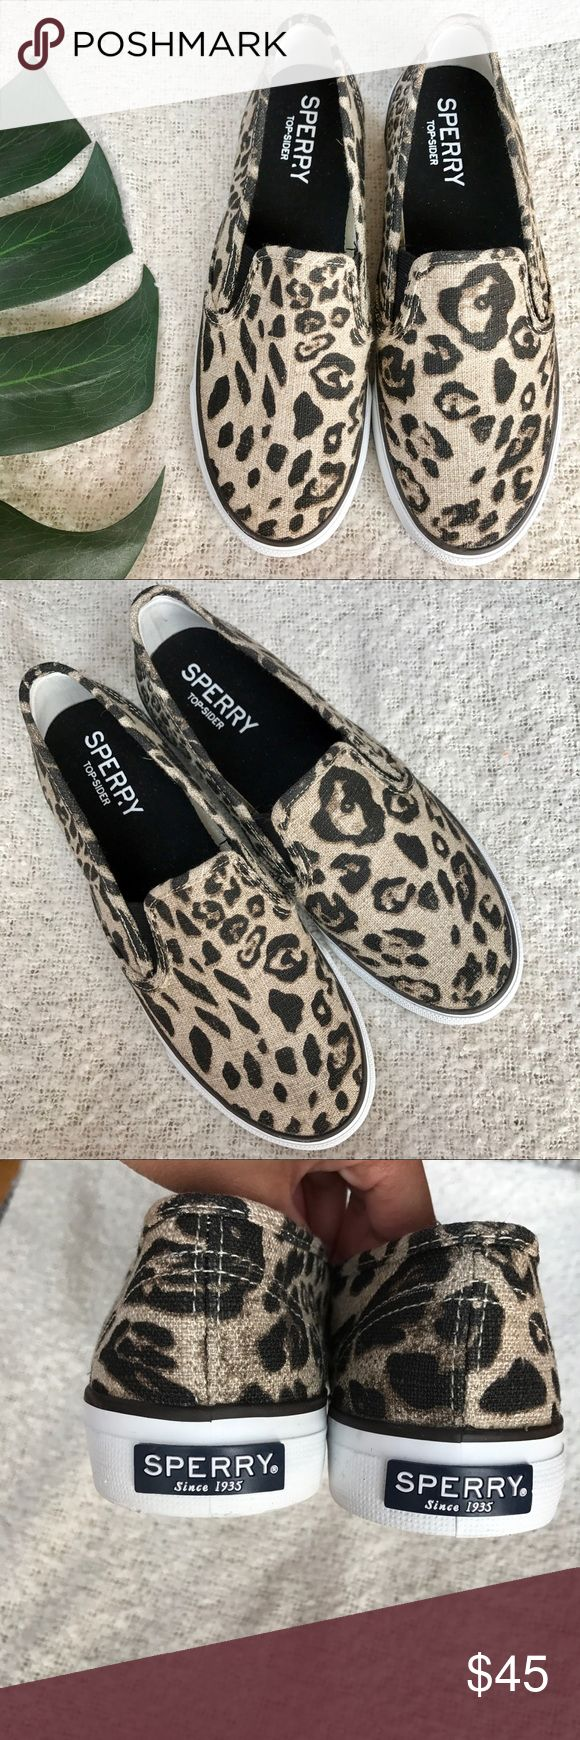 Sperry Printed Slip-on Sneakers!✨ These are new display shoee! Theyre a womens size 7 and fit true to size. Never worn by me but they were the display shoes at the Sperry-Topsider store. Perfect for fall. Sperry Top-Sider Shoes Sneakers